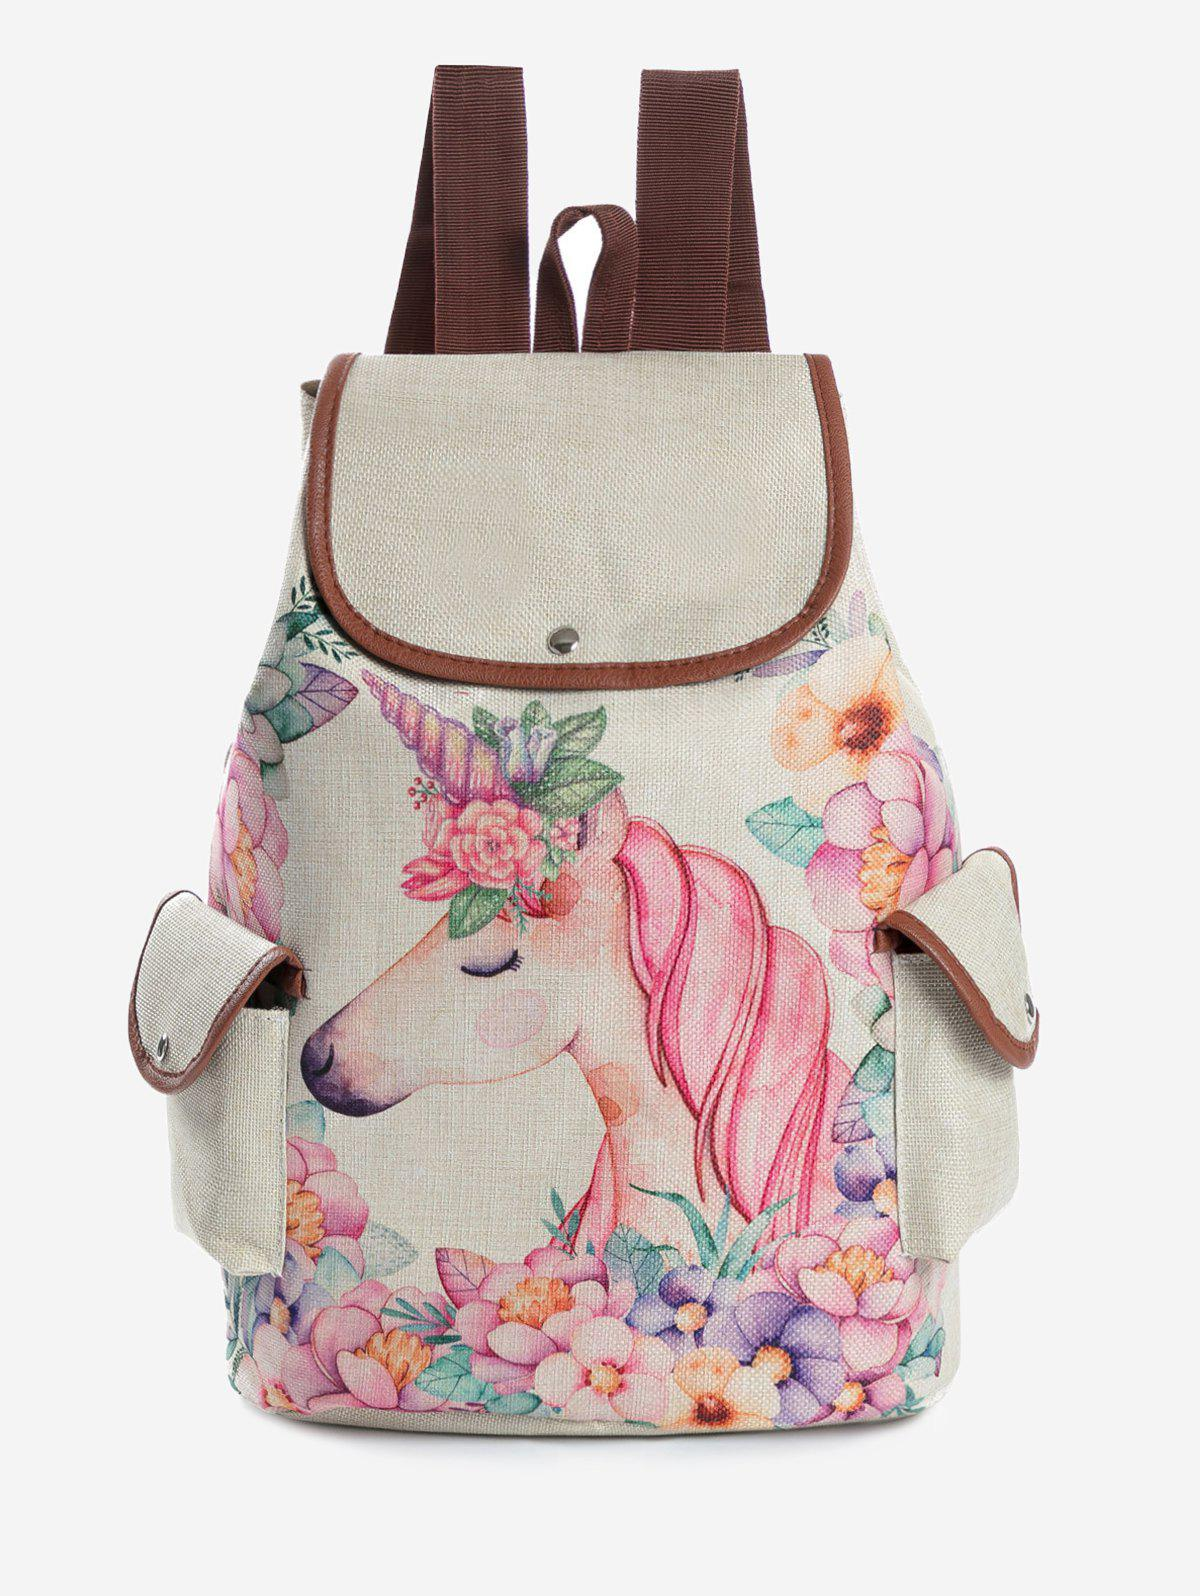 Patchwork Unicorn Print Chic Backpack - WARM WHITE